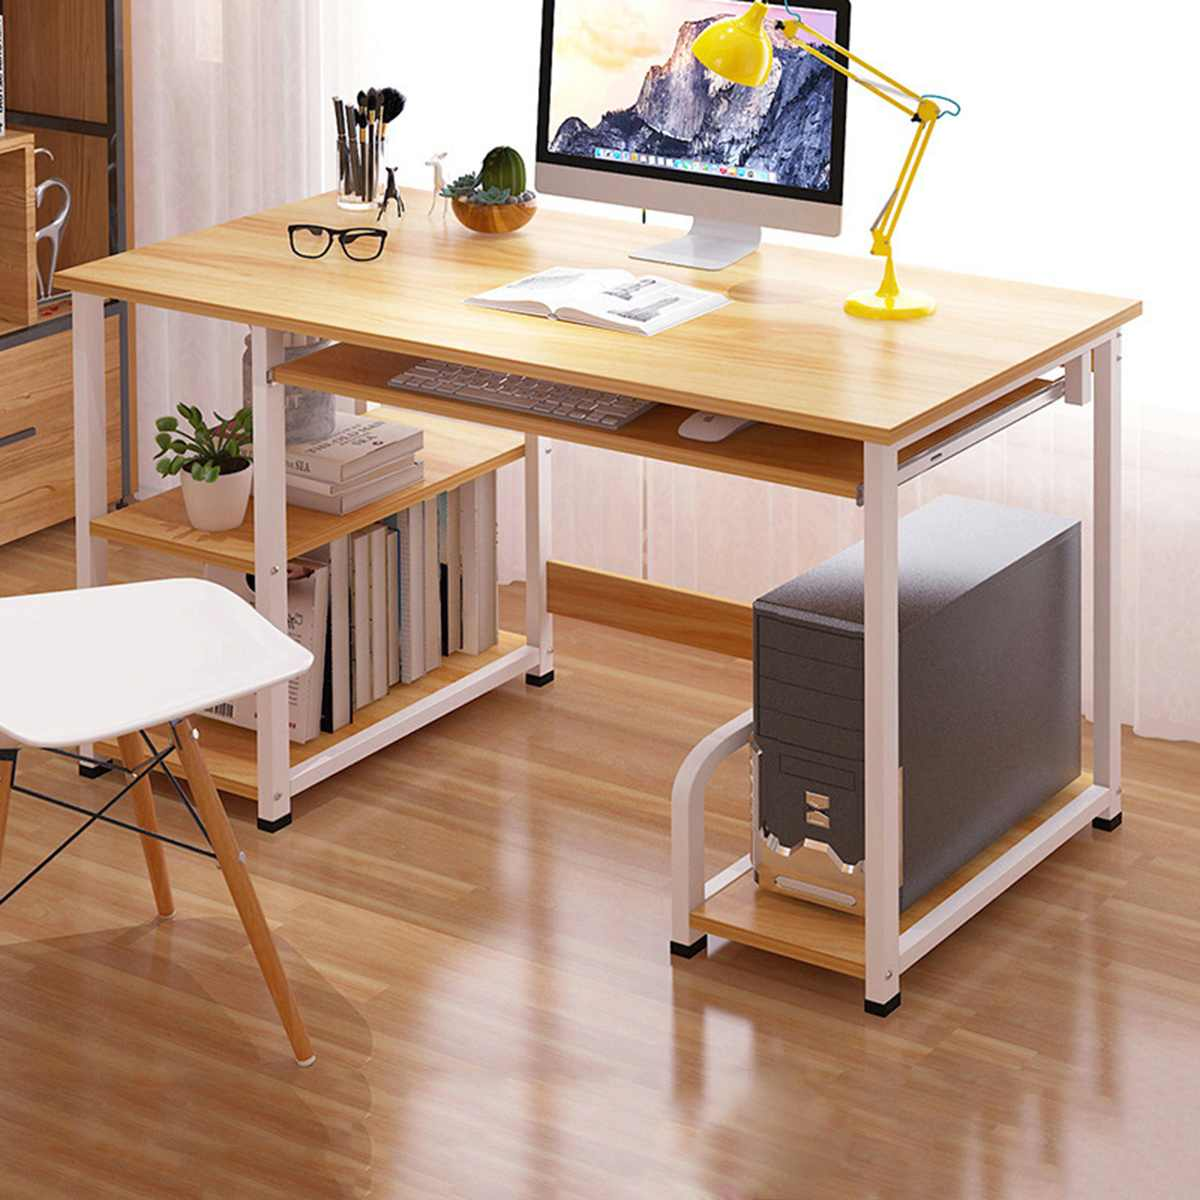 Large size Desktop Notebook Office Bed Tray Escritorio Lap Laptop Stand Bedside Desk Computer Study Table with Storage Organizer 1